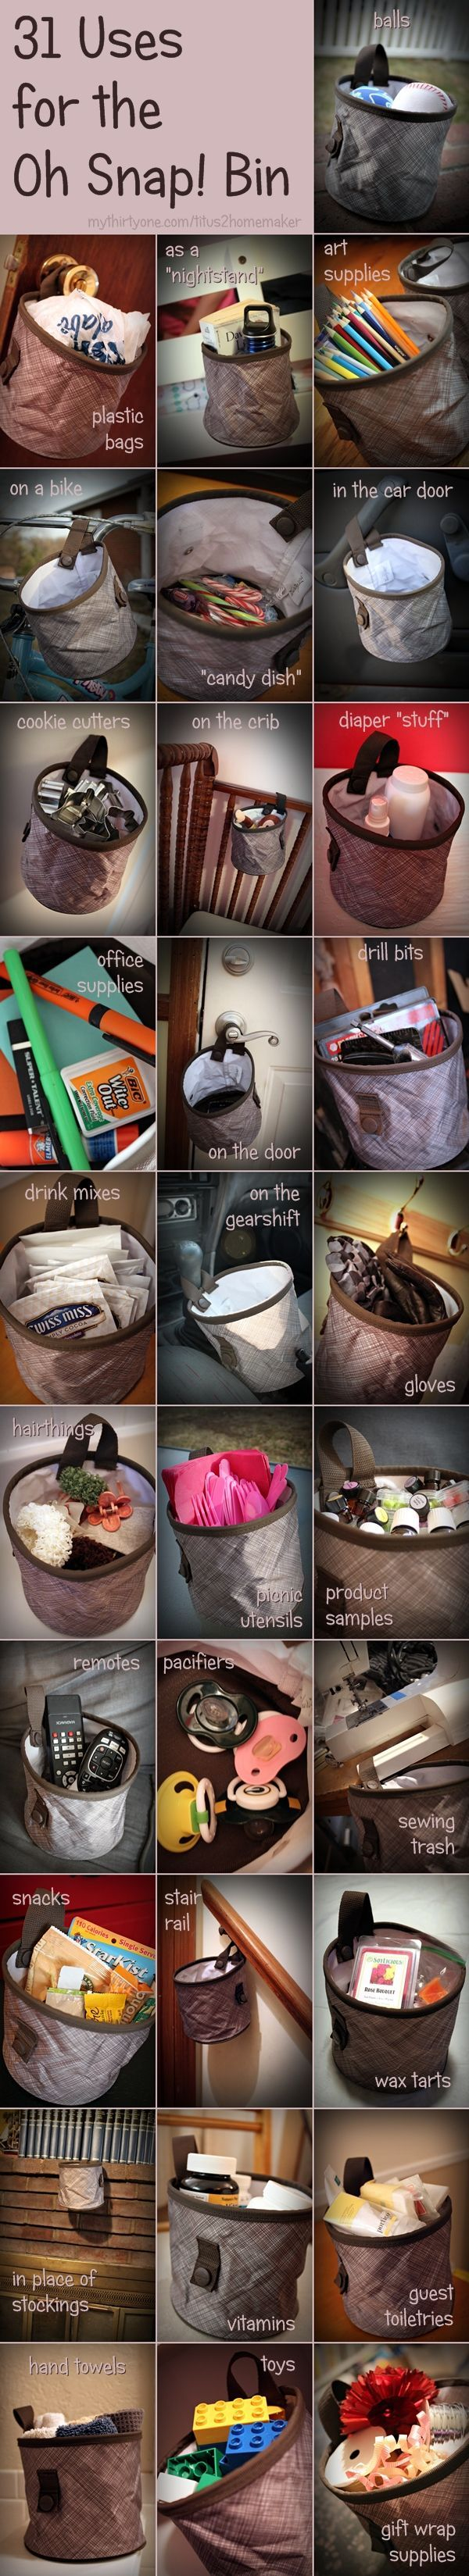 31 Ways to use the Oh Snap! Bin. These ideas should get you started. www.mythirtyone.ca/Lynae